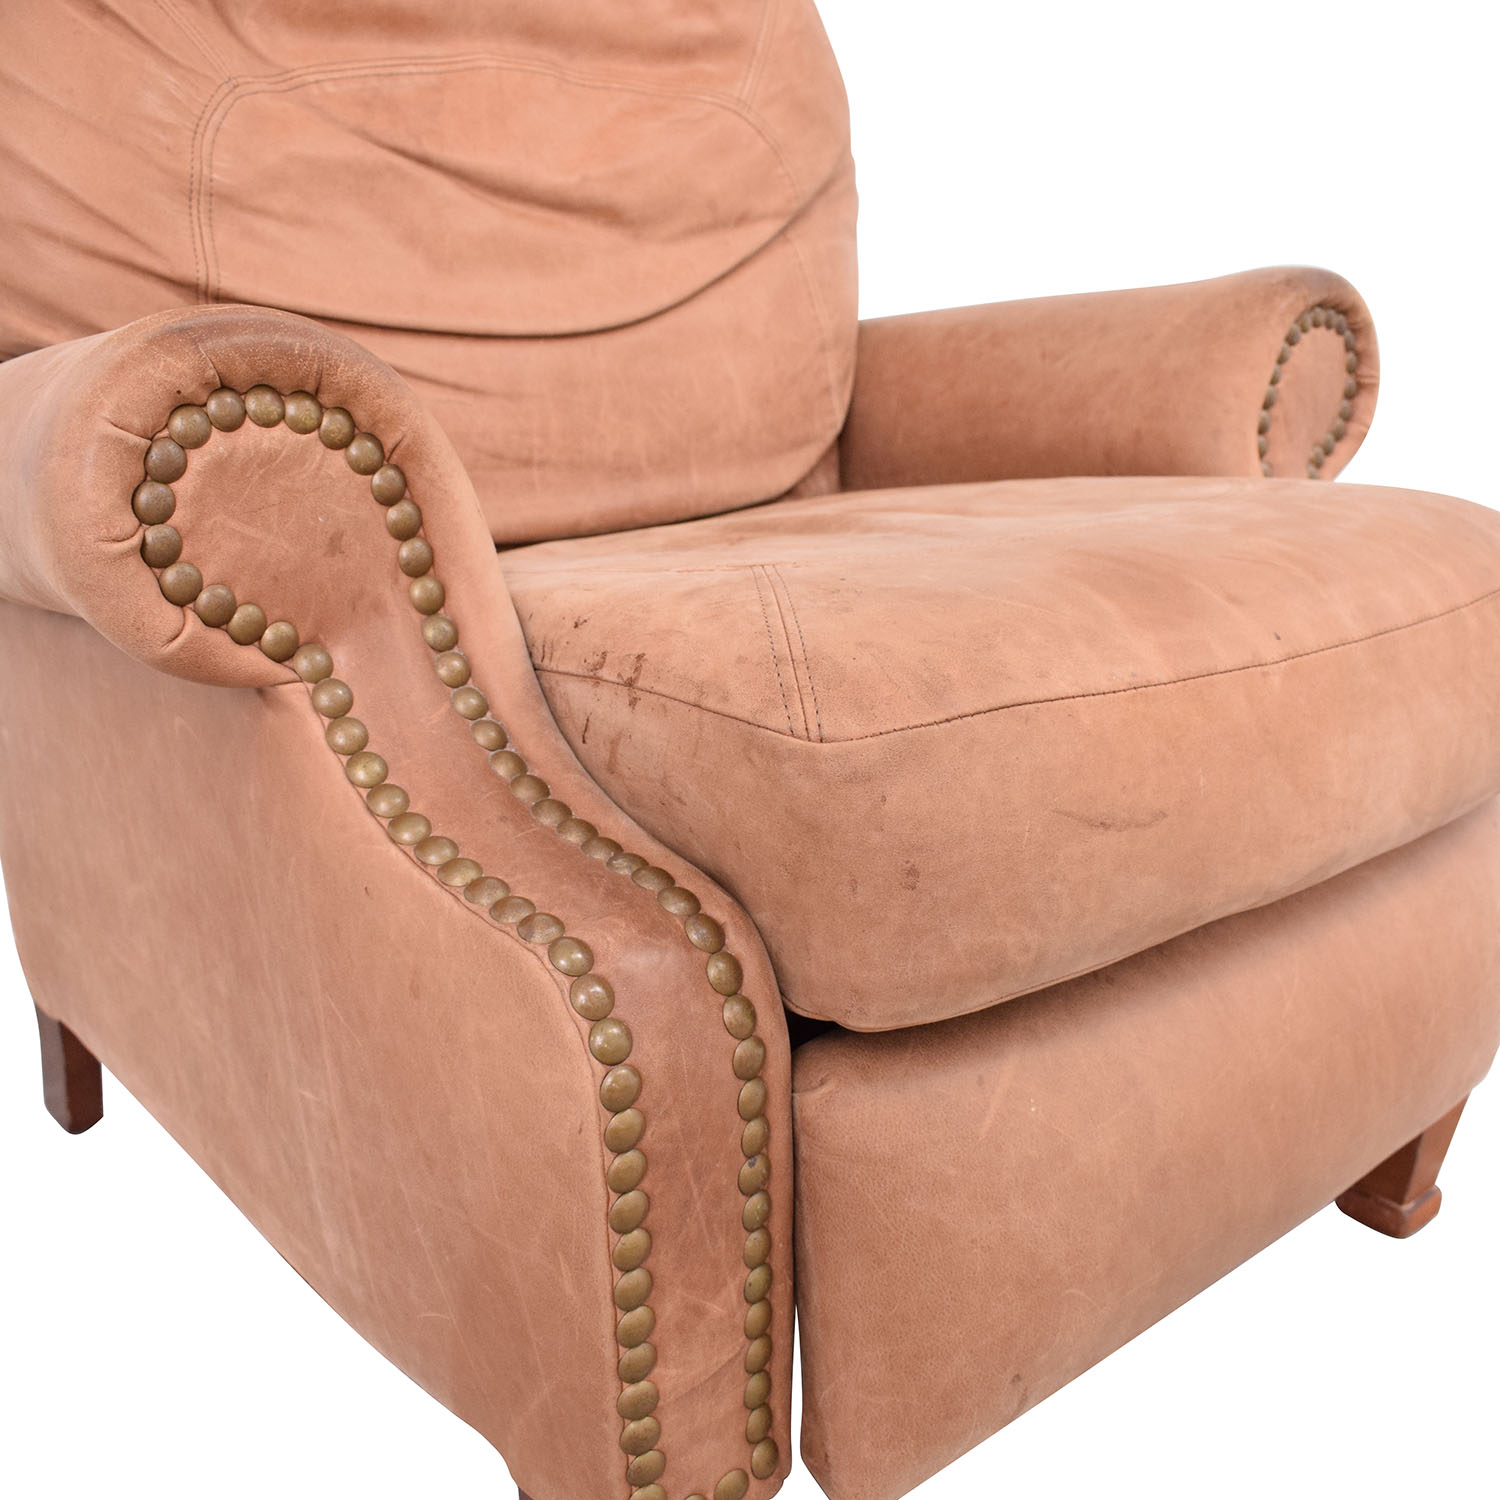 Distinctions Furniture Distinction Leather Classic Recliner on sale